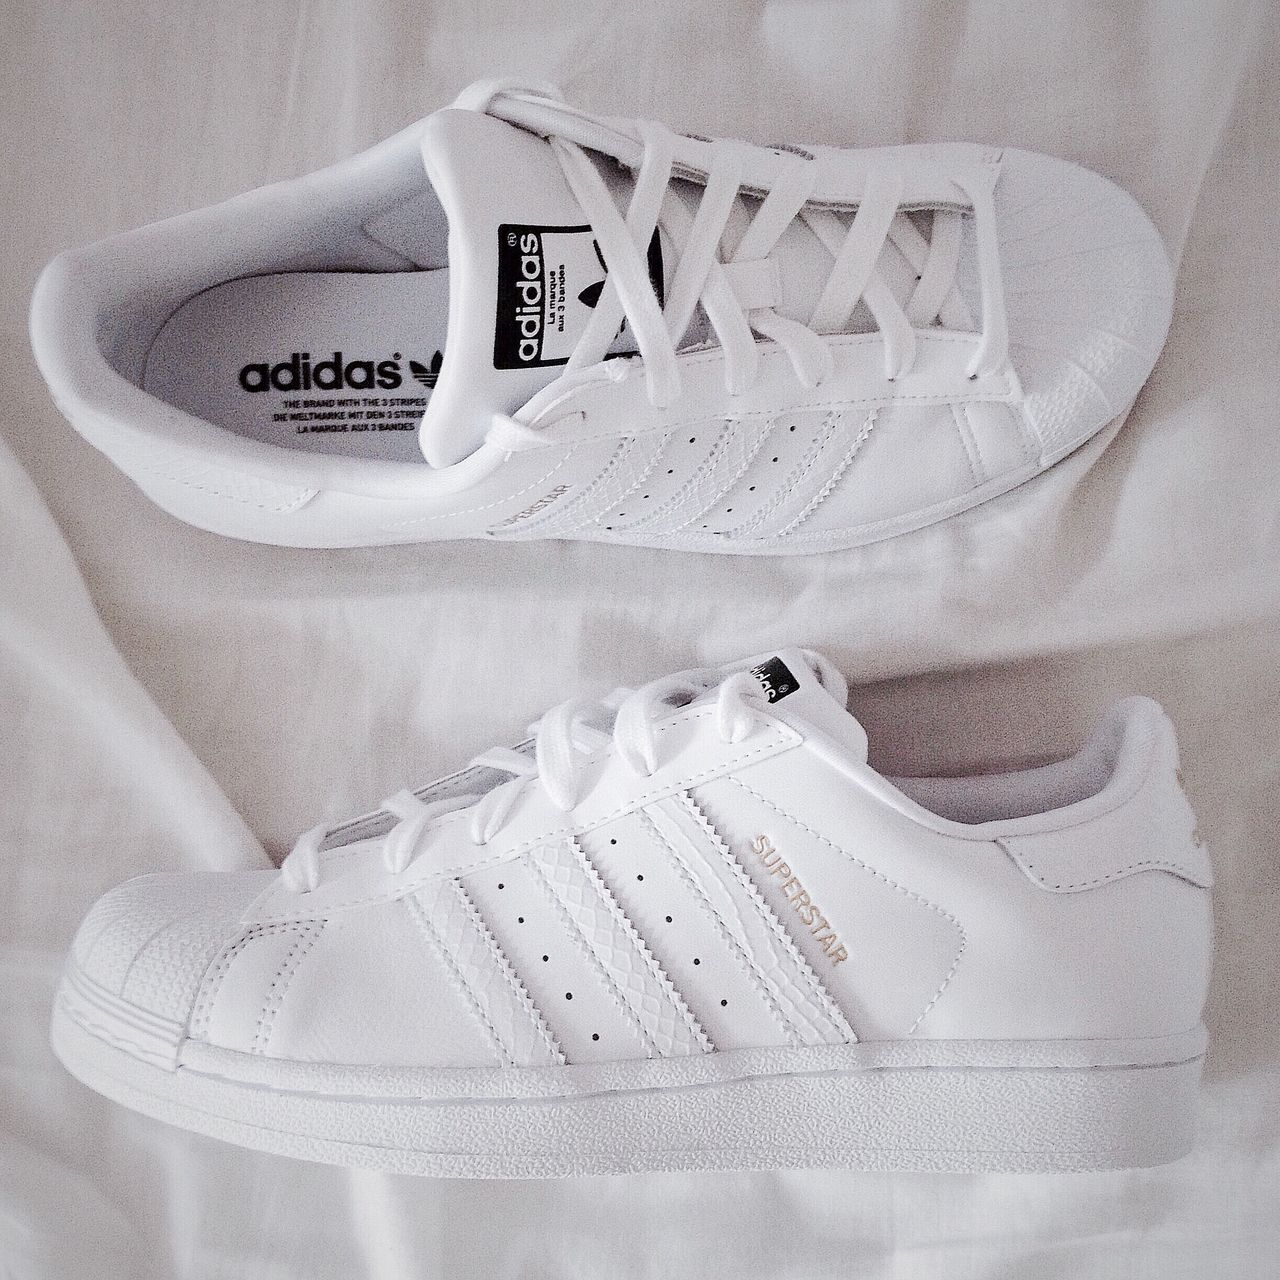 My girlfriend loves to  her adidas adidas her Superstars and I love it too e299df